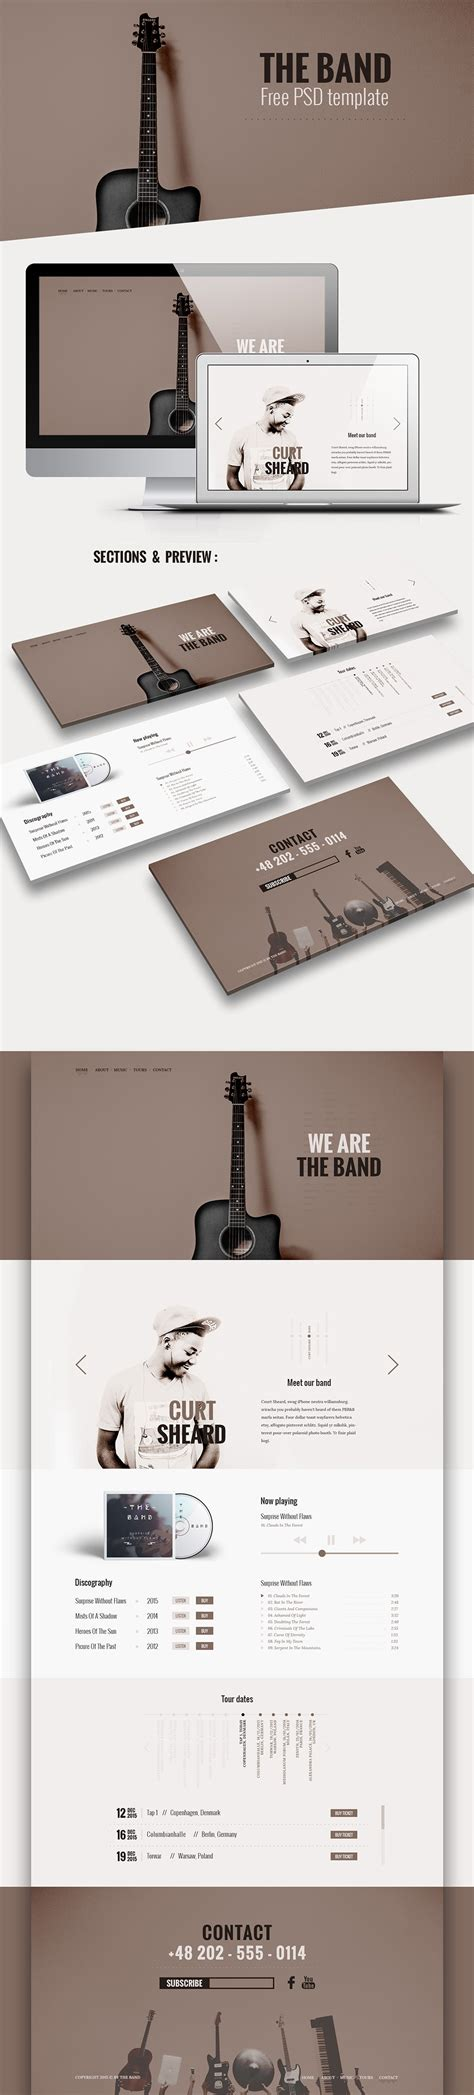 music band website template free psd at downloadfreepsd com